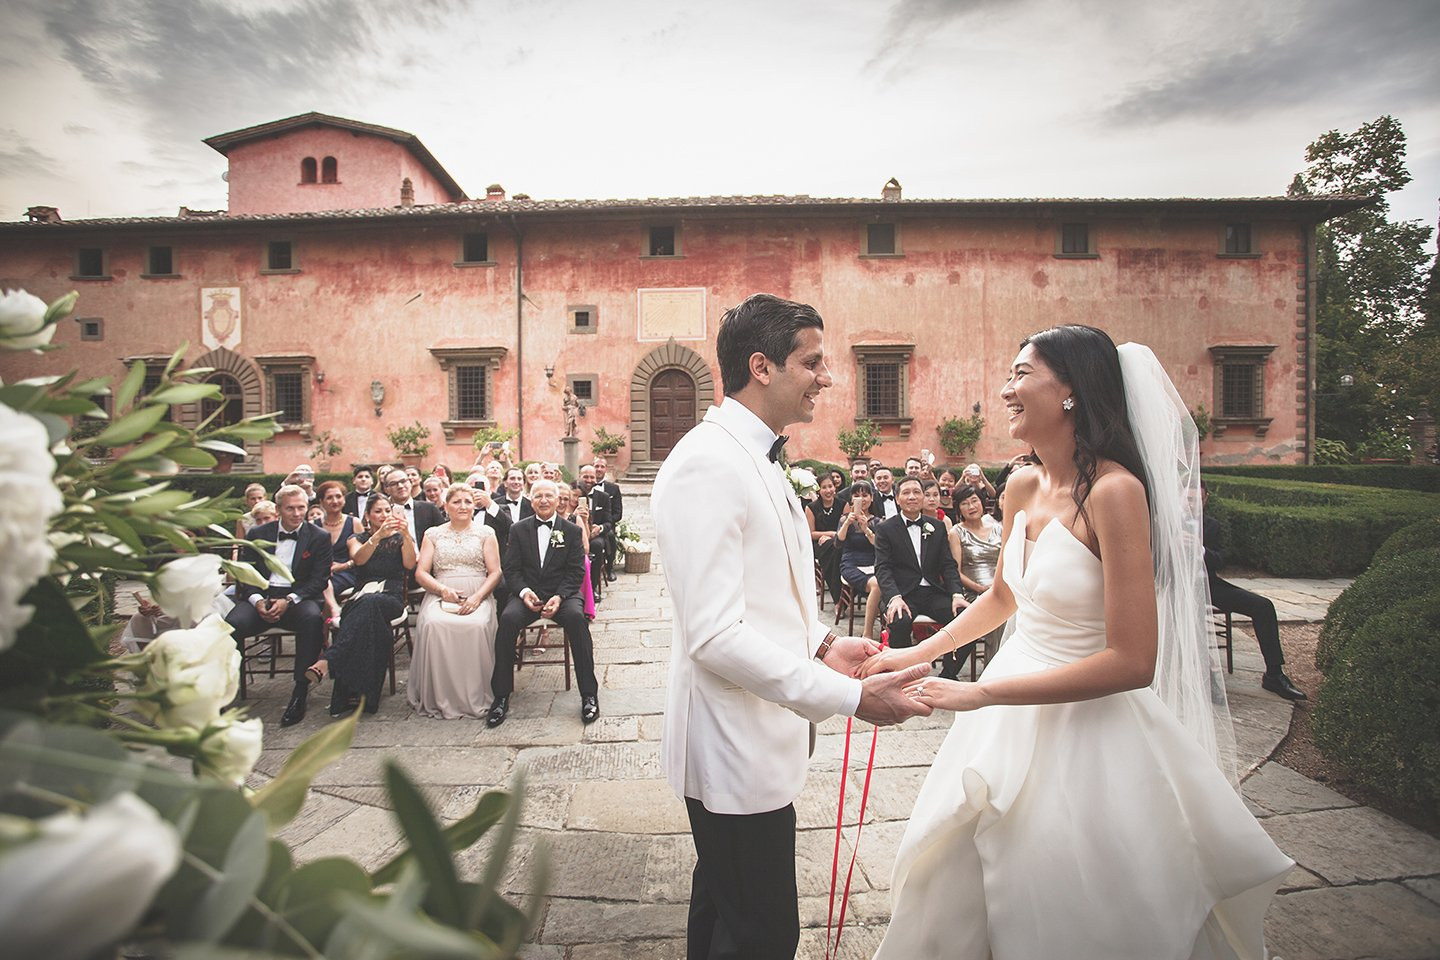 red-string-blessing-wedding-ceremony-tuscany-vignamaggio